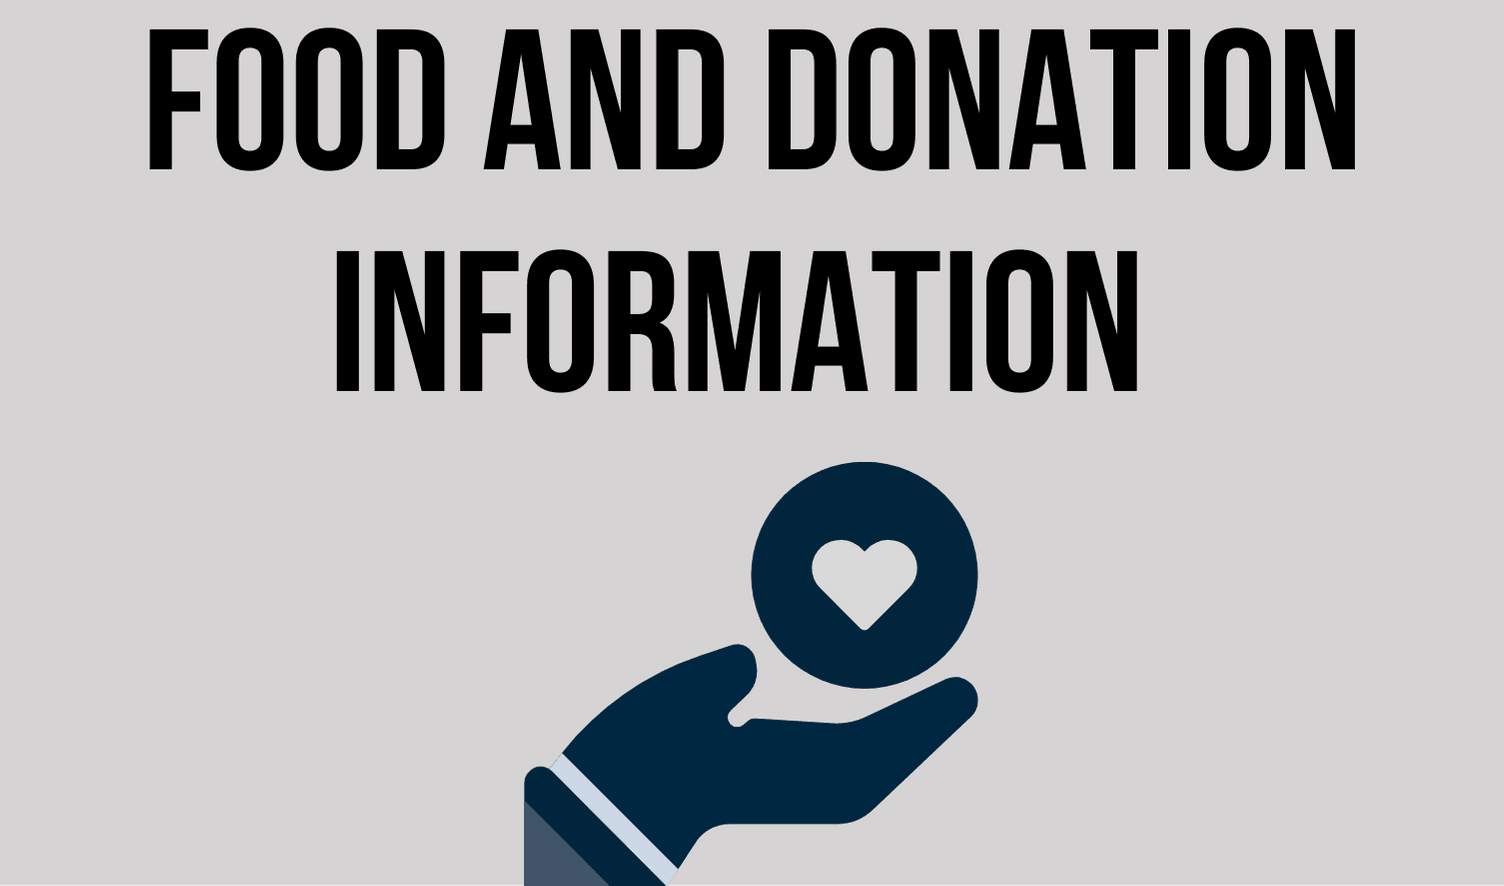 Picture of a hand holding a heart and the following text: Food & Donation Information